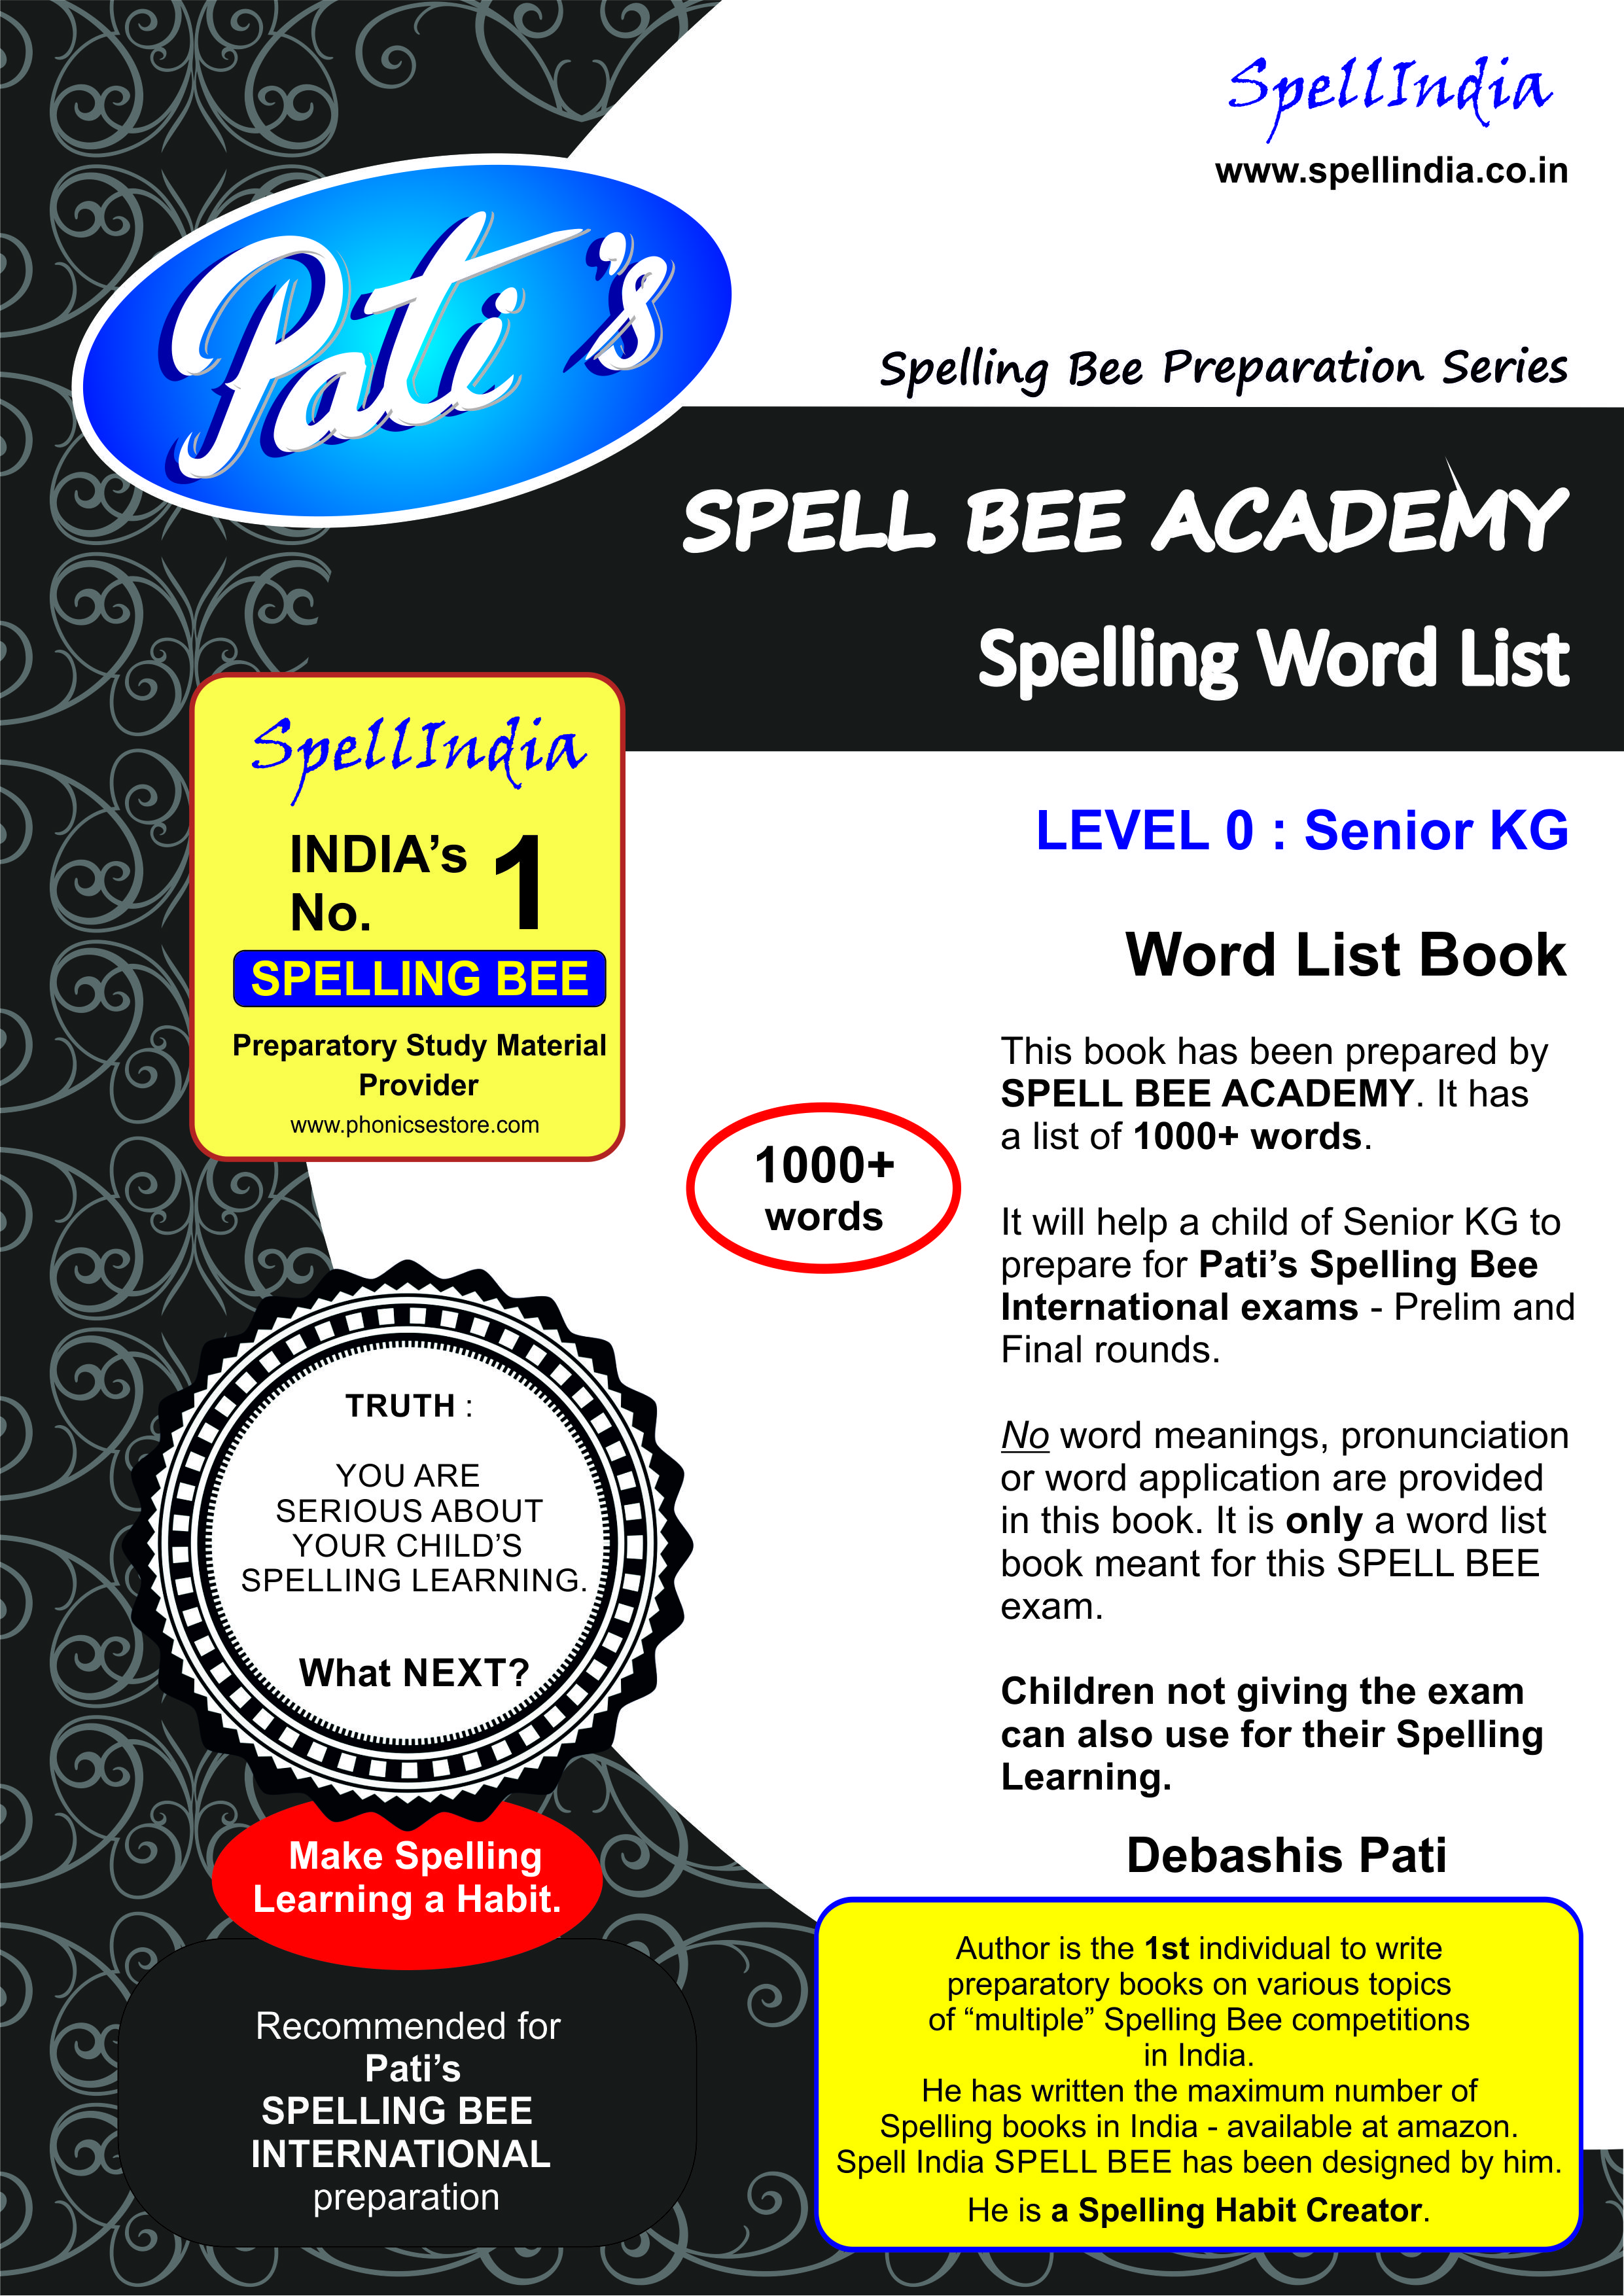 SPELL BEE BOOKS FOR SENIOR KG